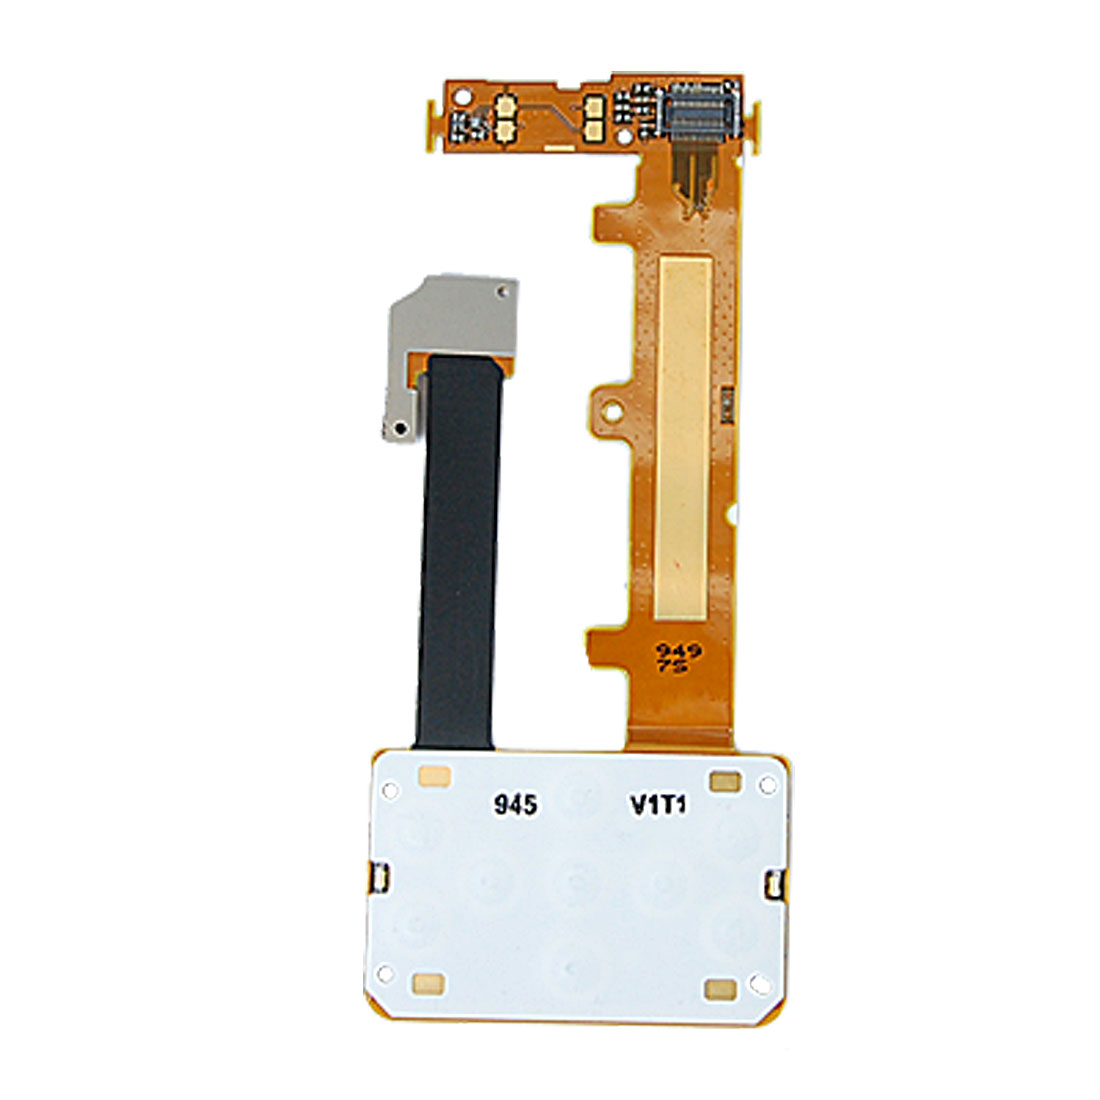 Replacement Membrane Keypad Flex Cable for Nokia 7100s